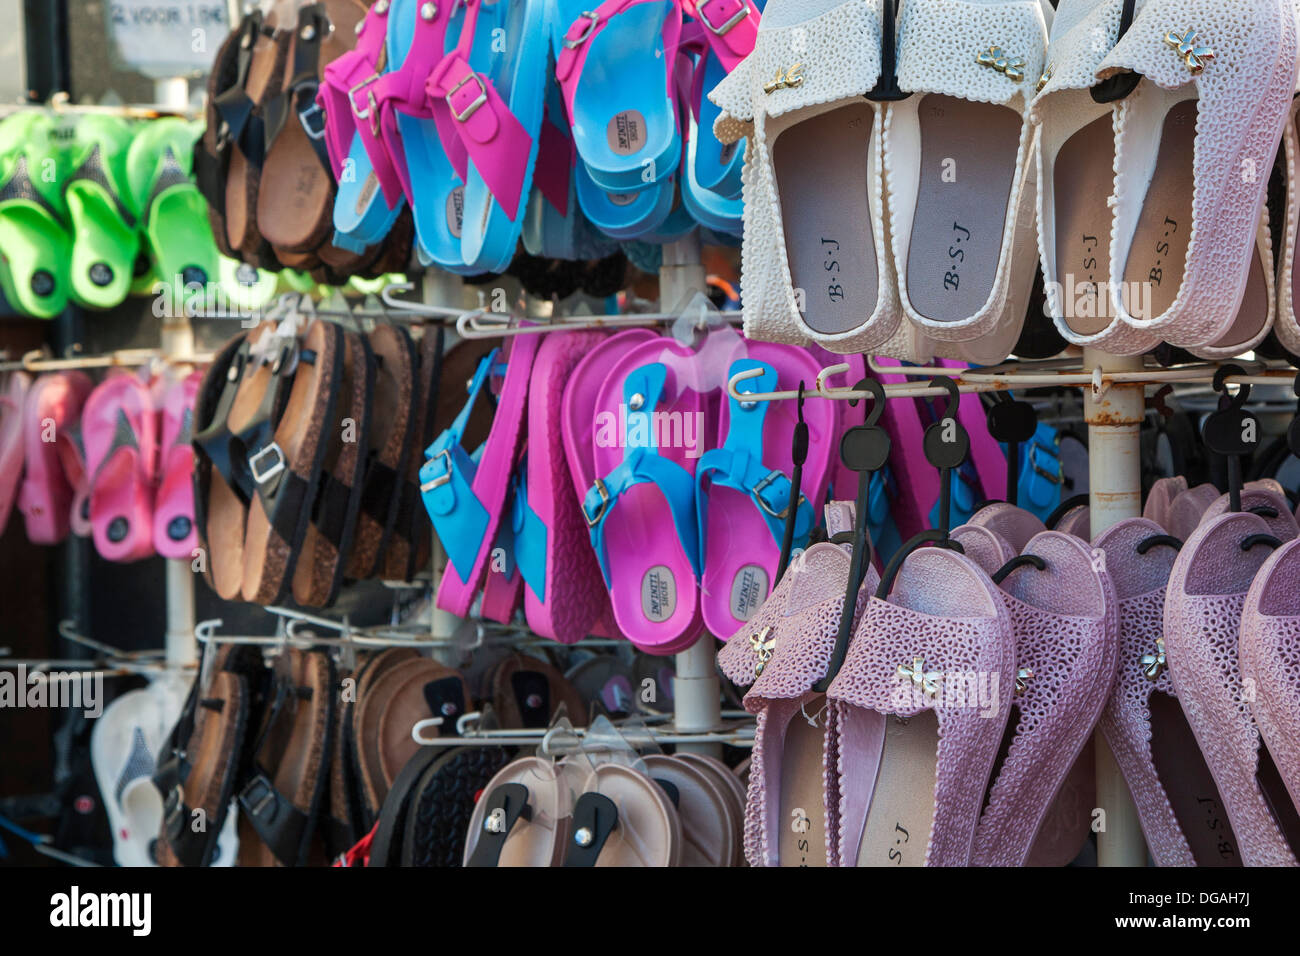 Shop selling colourful sandals, thongs and flip-flops in seaside resort along the coast - Stock Image